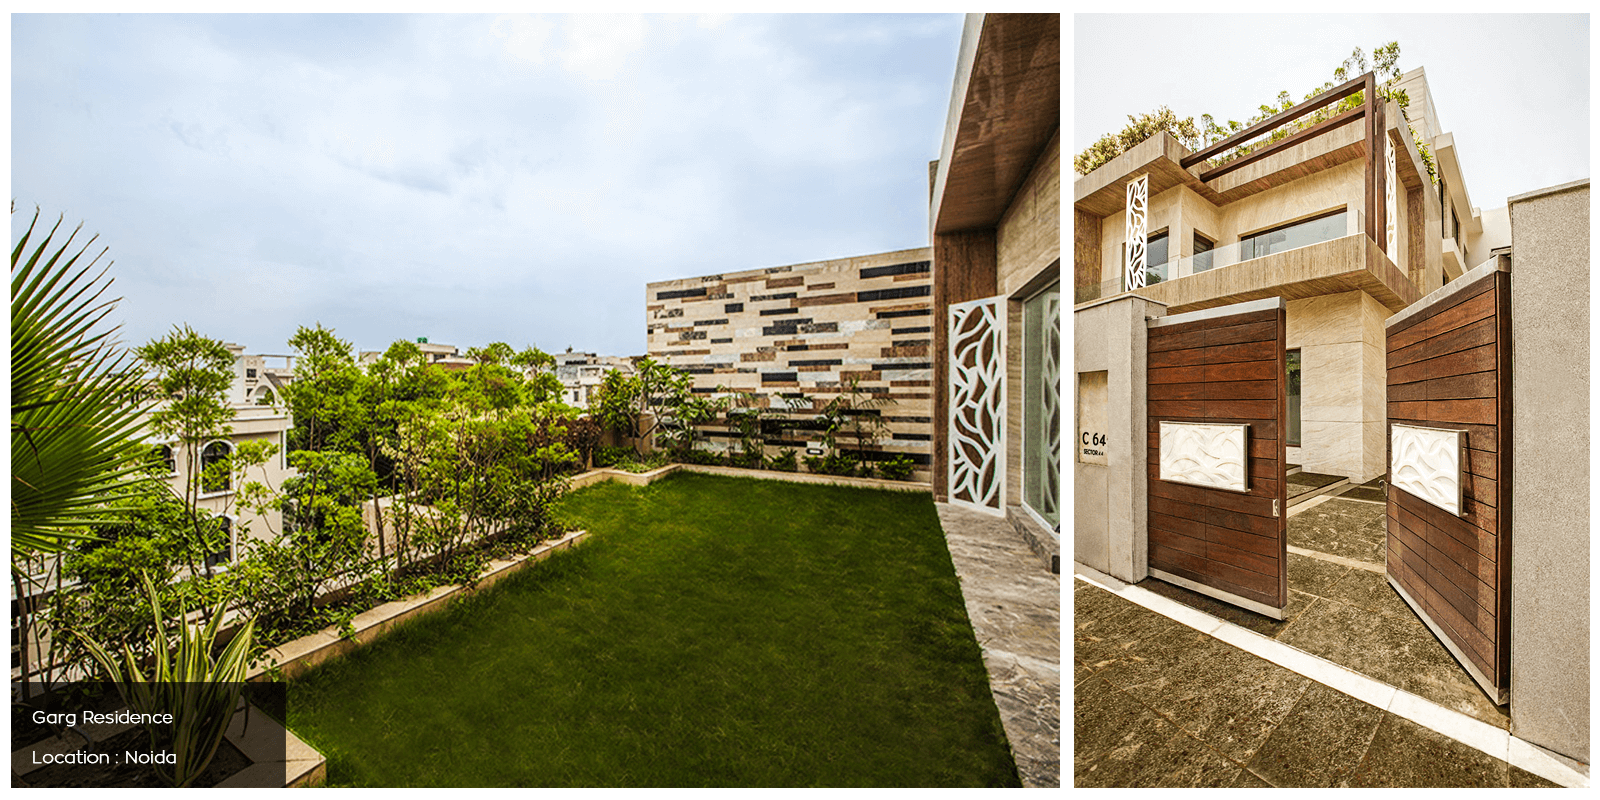 garg-residence-the-novarch-architects-best-architects-in-cr-park-south-delhi-110019